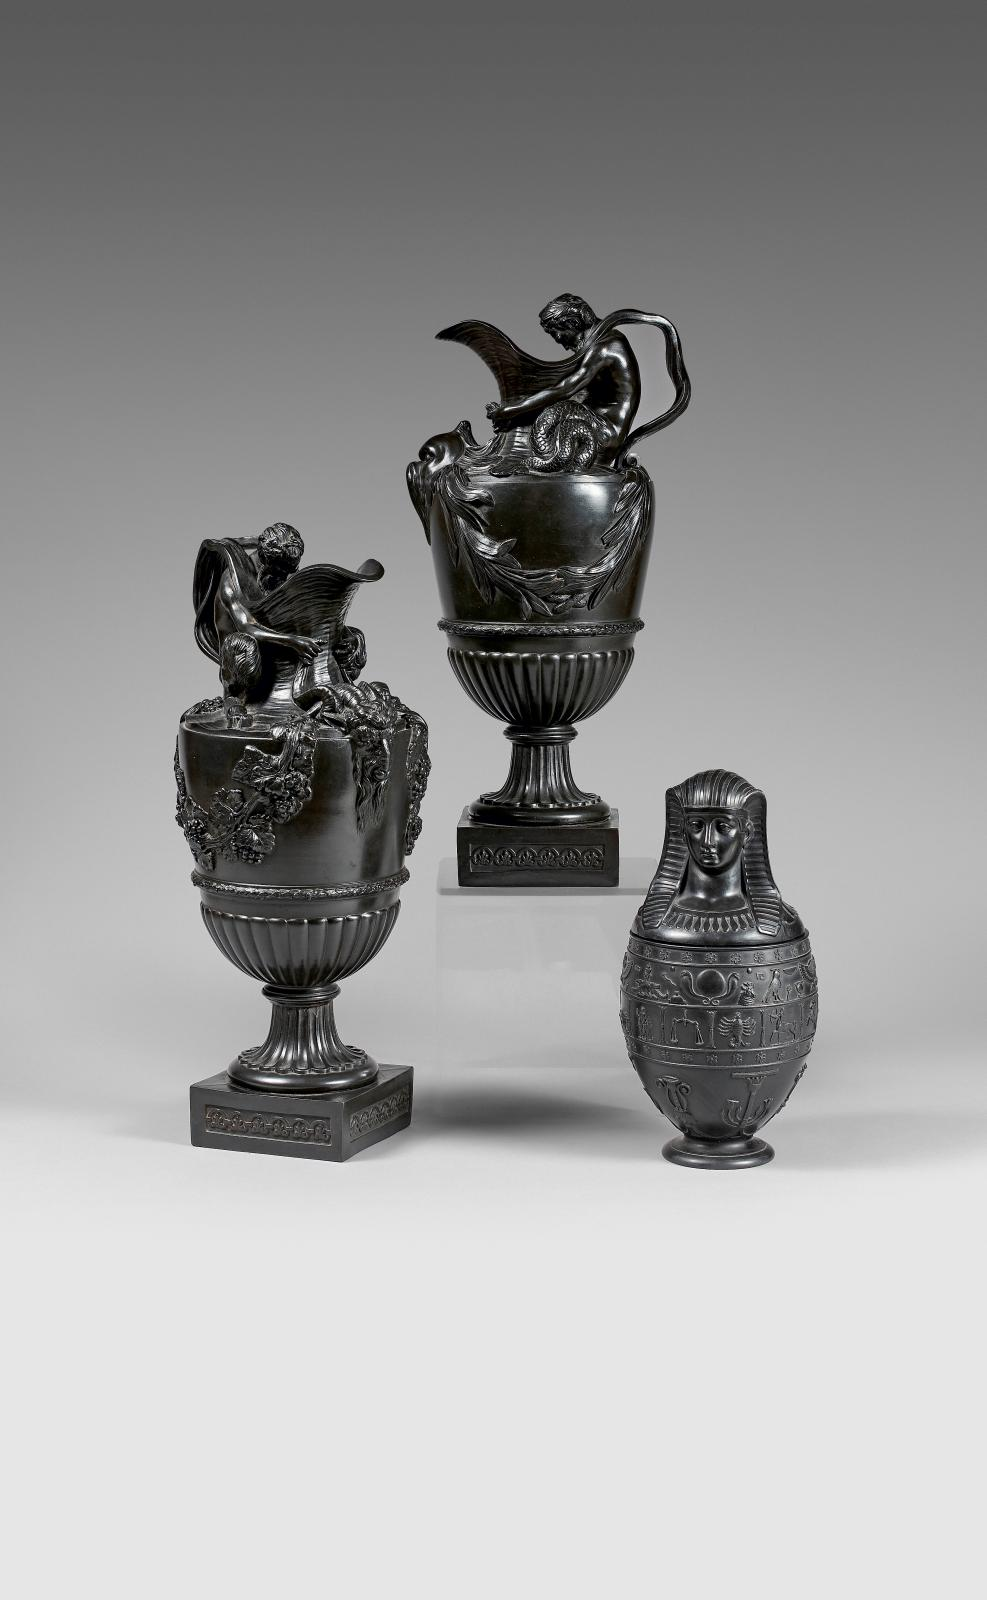 Late 18th century, Wedgwood, model after Sigisbert-François Michel (1728-1811), pair of black basalt ewers with handles in the form of sat